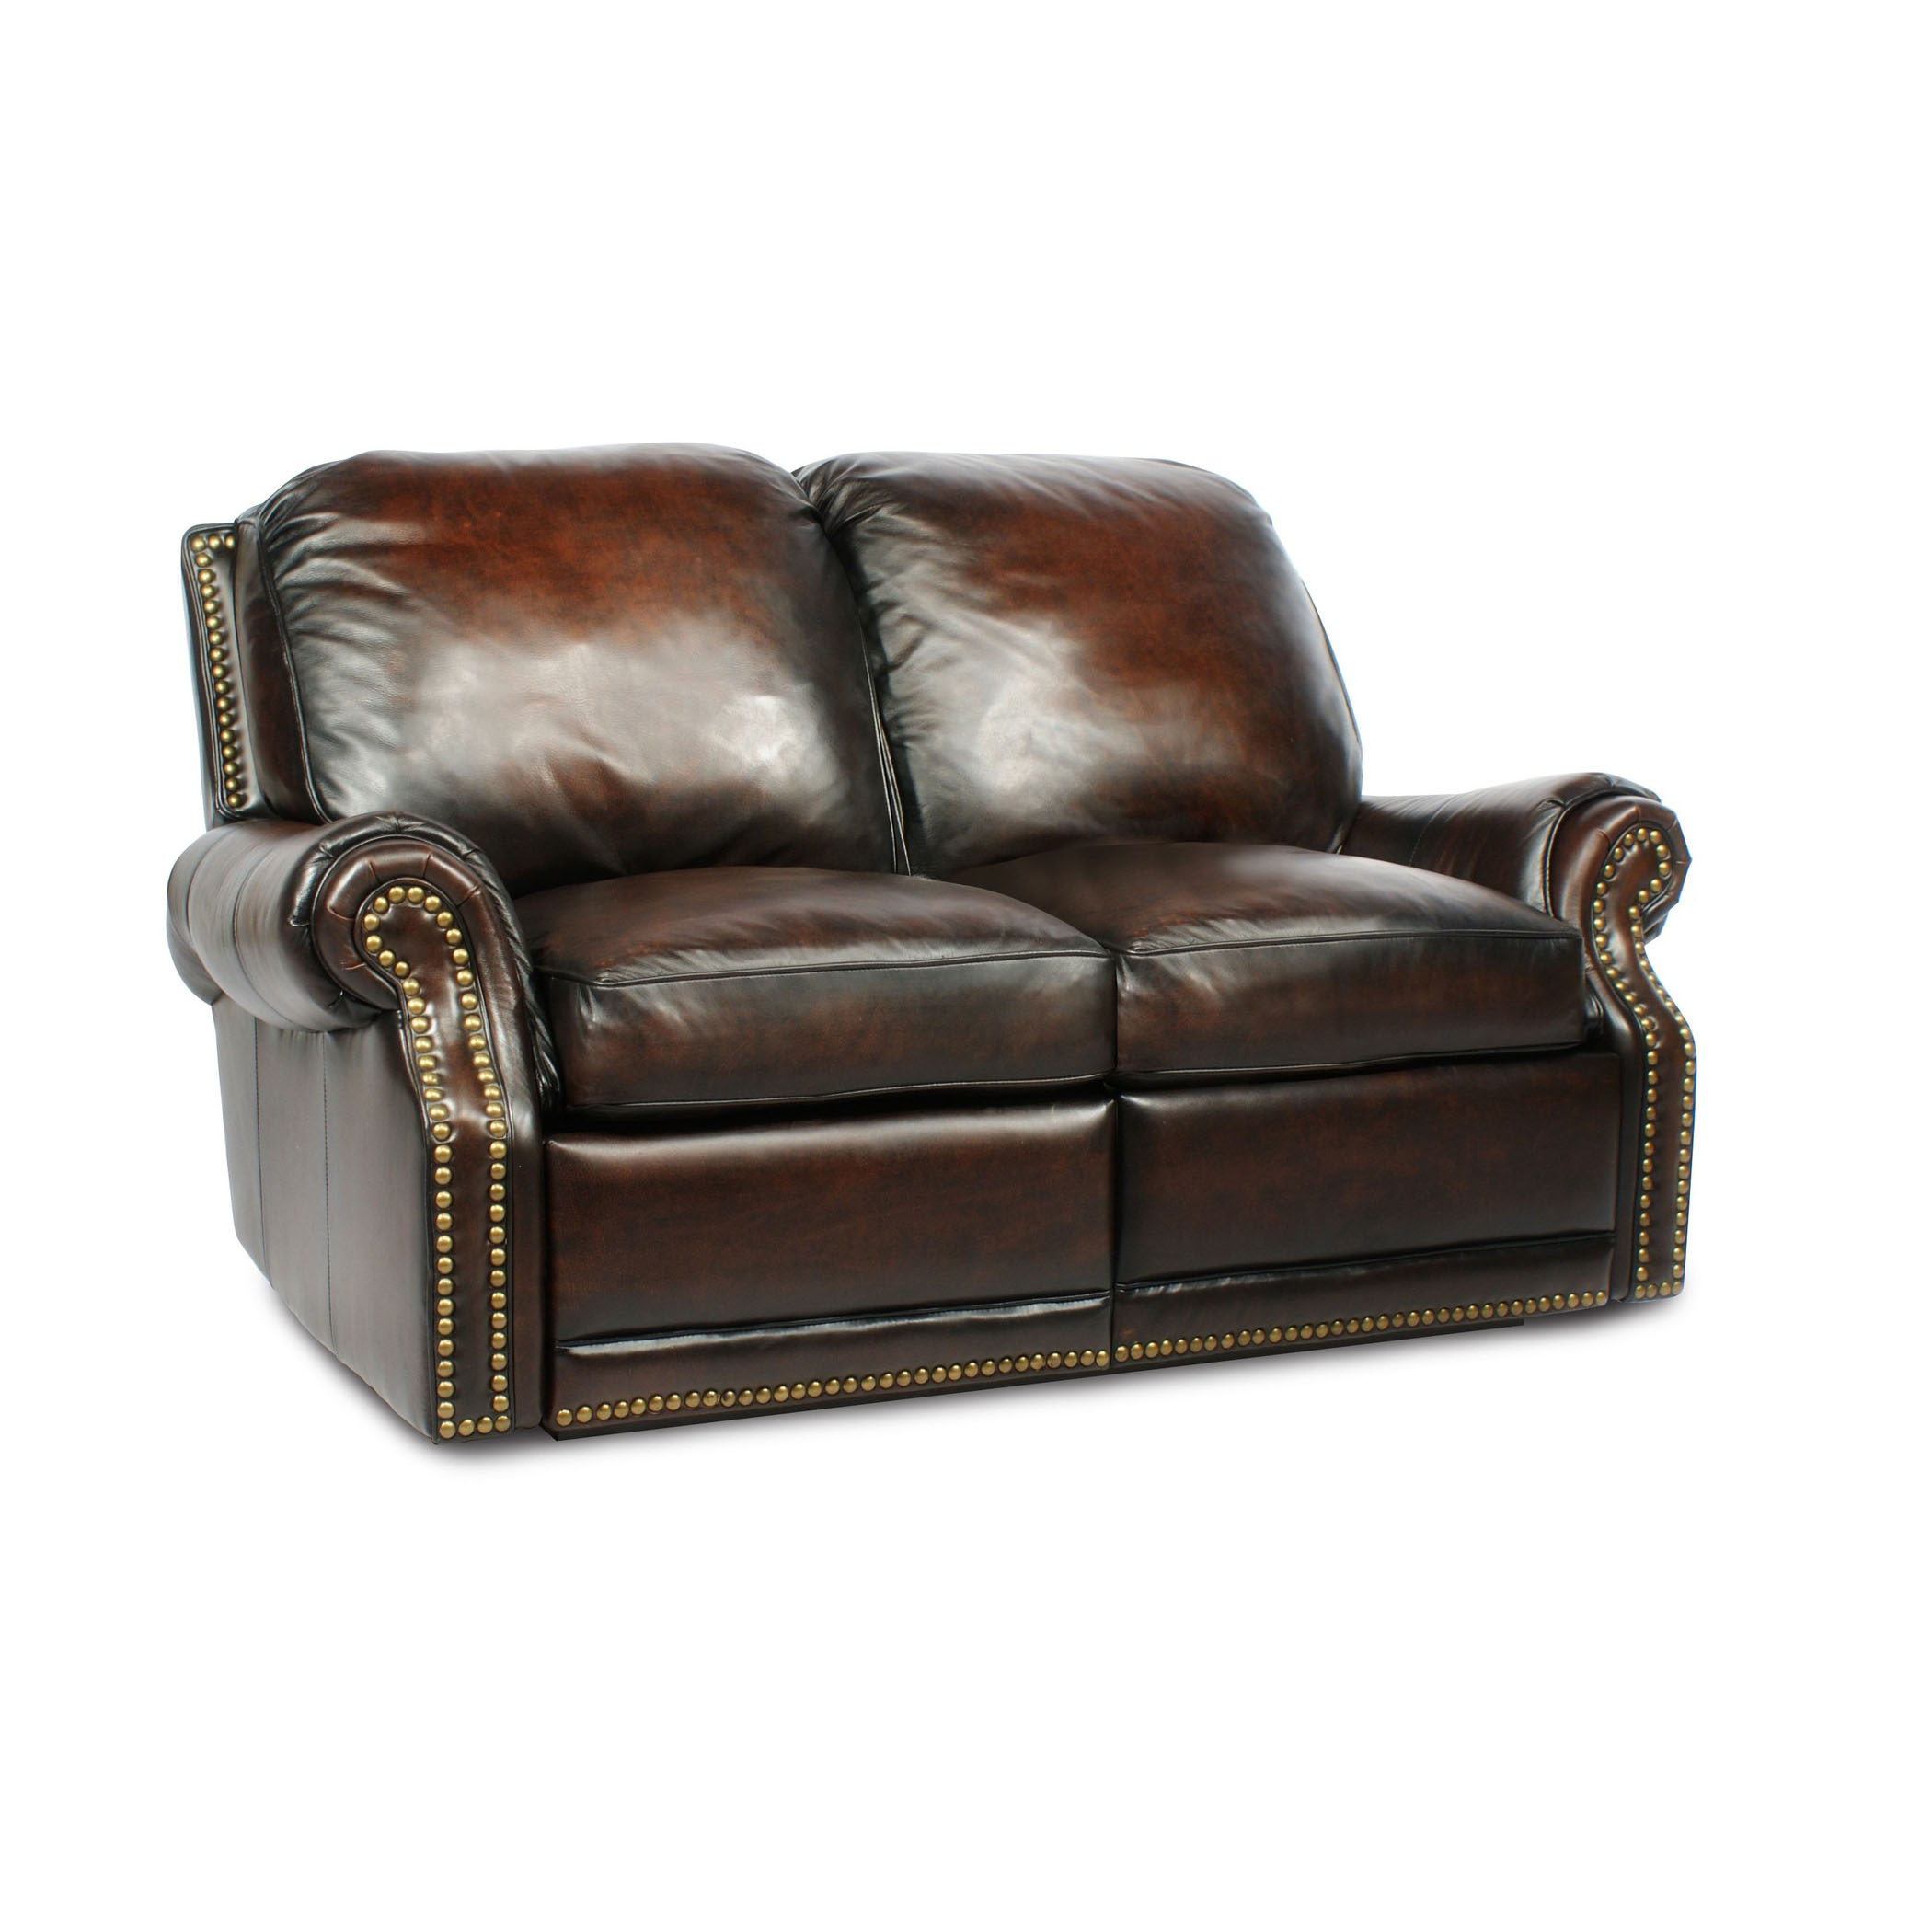 Barcalounger premier ii leather 2 seat loveseat sofa Reclining leather sofa and loveseat